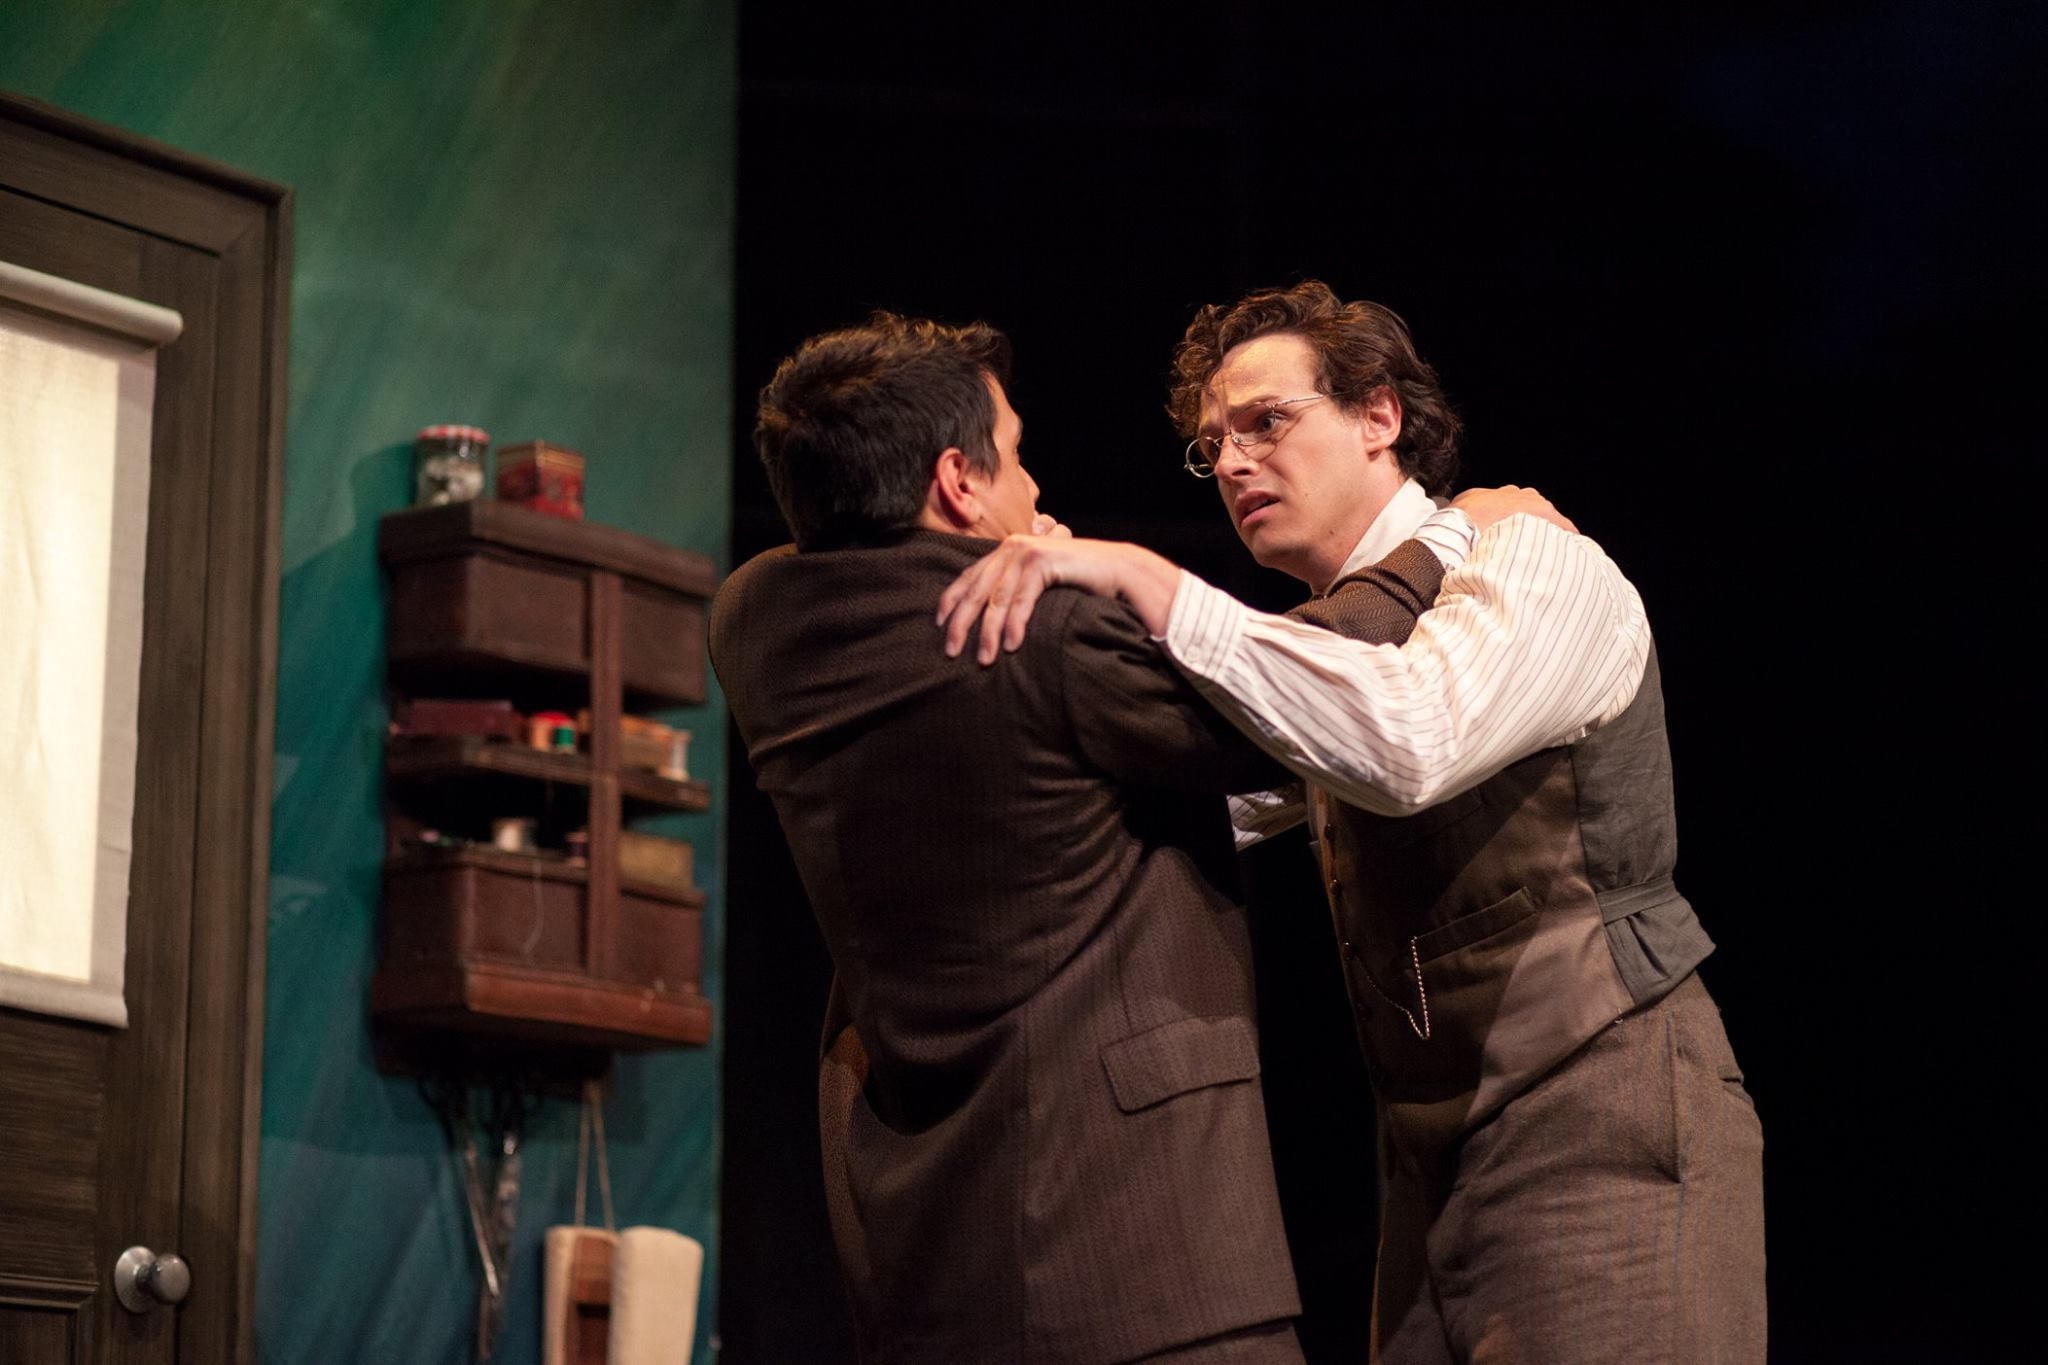 Brooks Laney as Stanley Fisher and Kyle Cordova as George Burlew. Photo by Lawrence Peart.